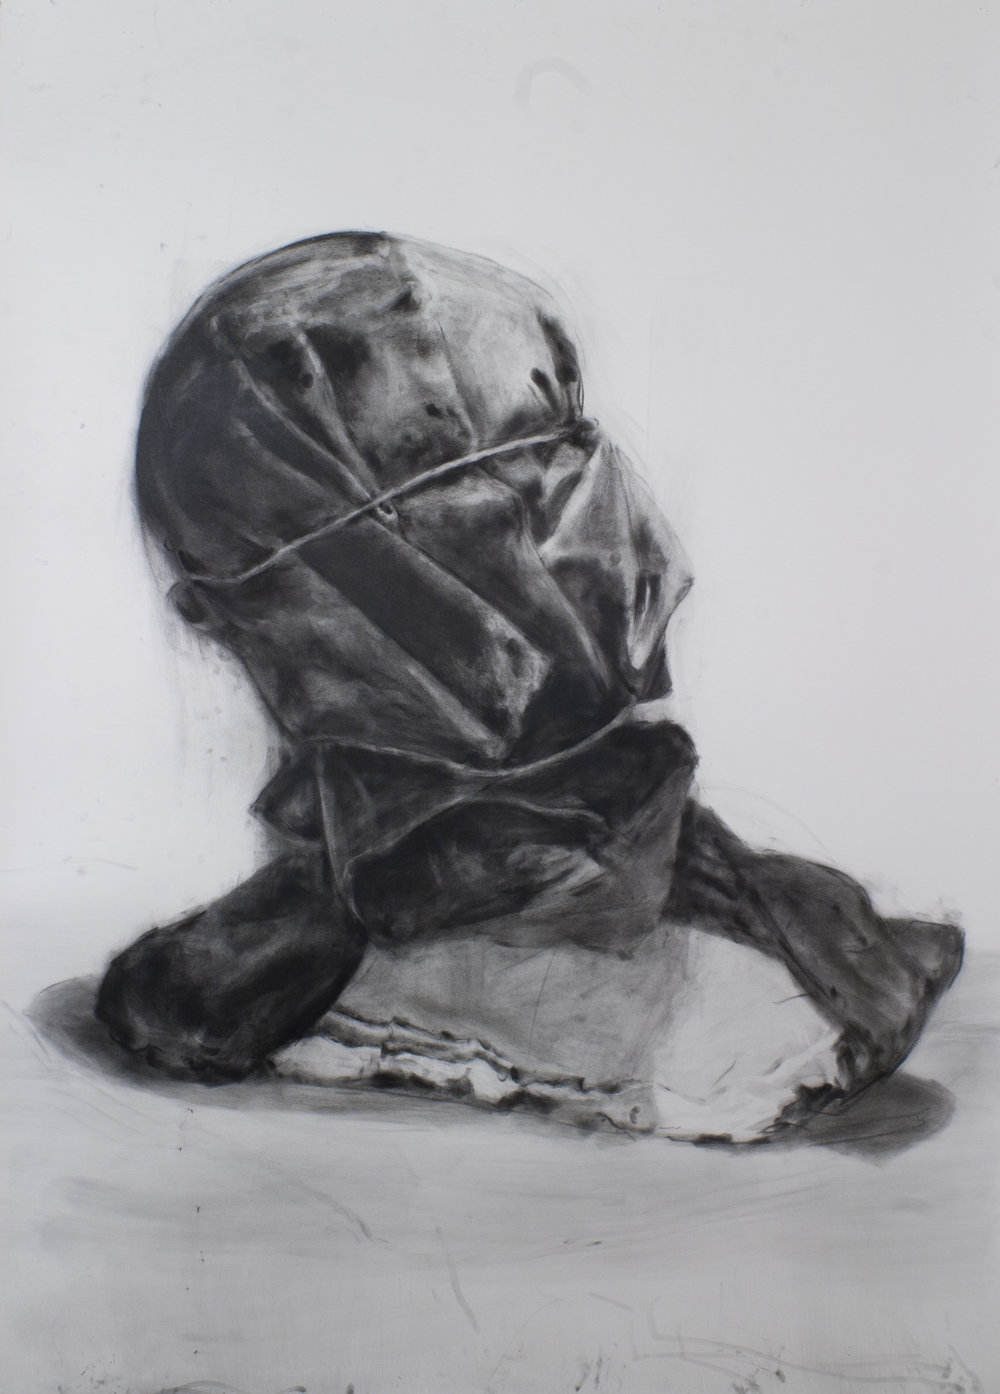 Self-Portrait with Shroud